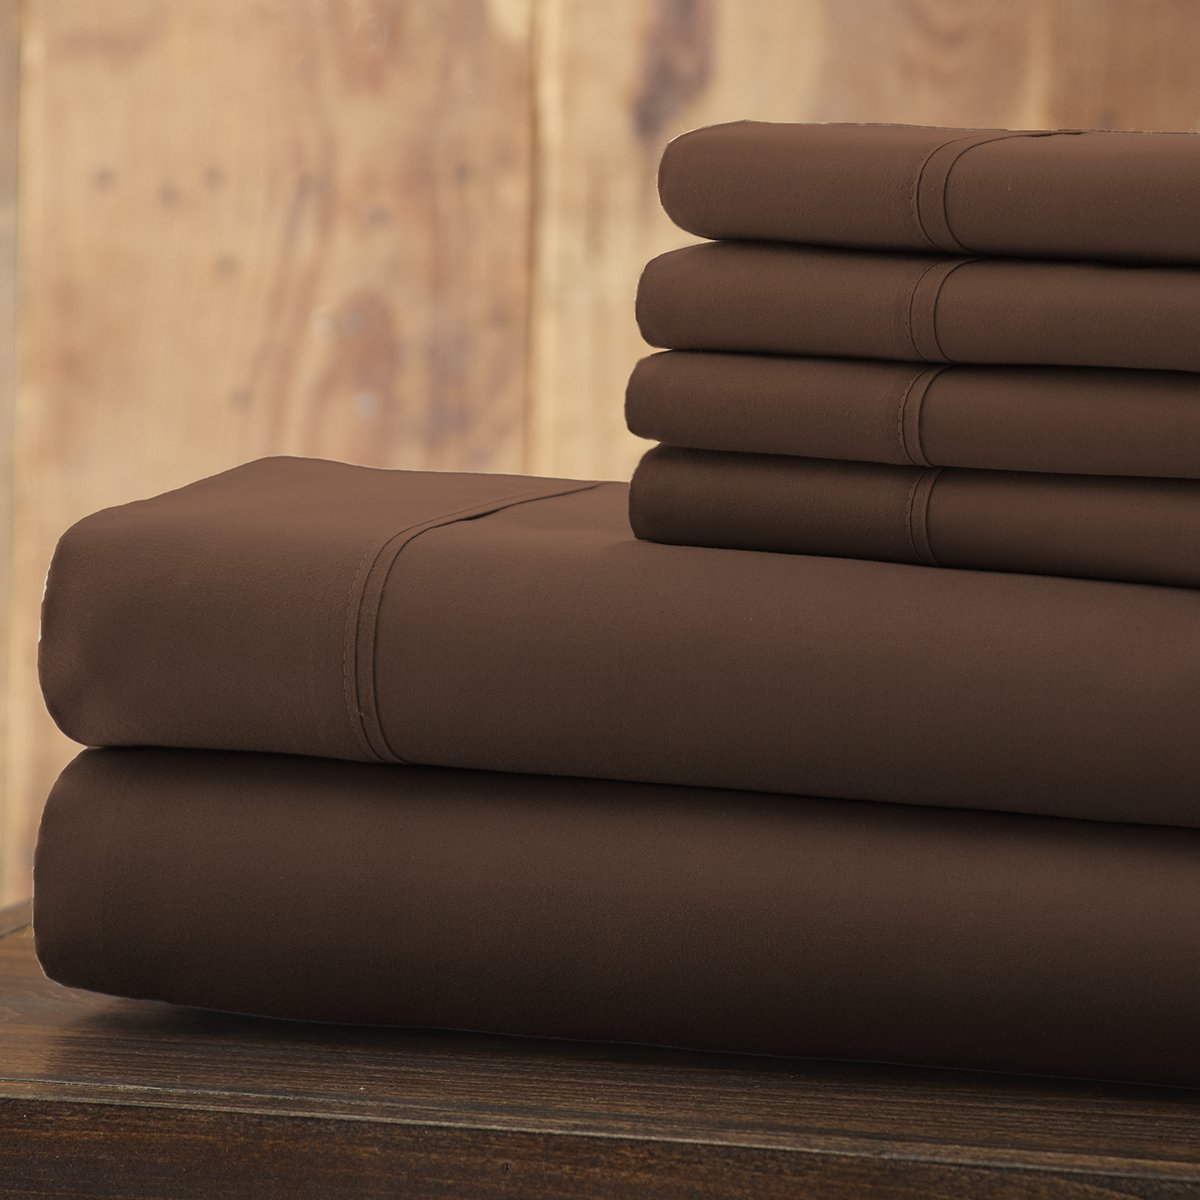 Spirit Linen 6 Piece Everyday Essentials 1800 Series Sheet Set, Queen, Chocolate